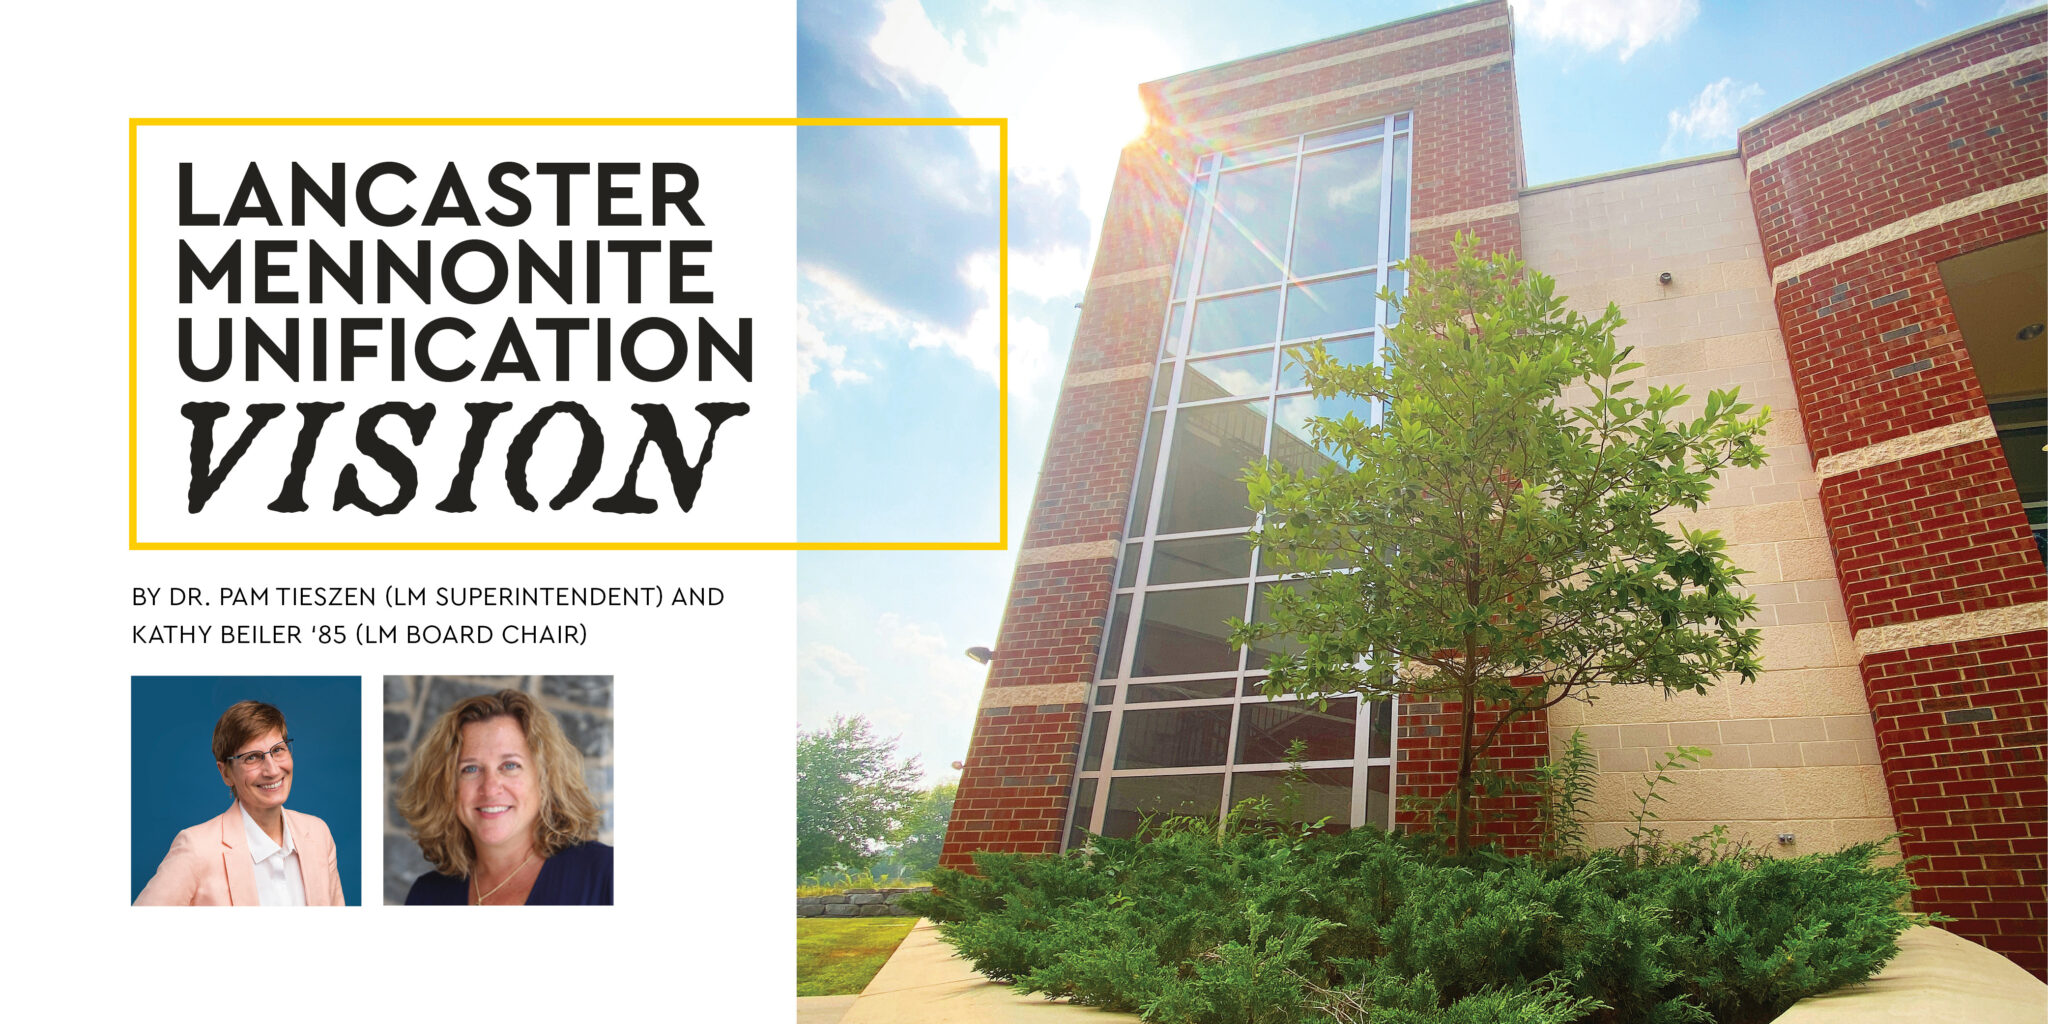 pam kathy photos and front of rutt building story feature